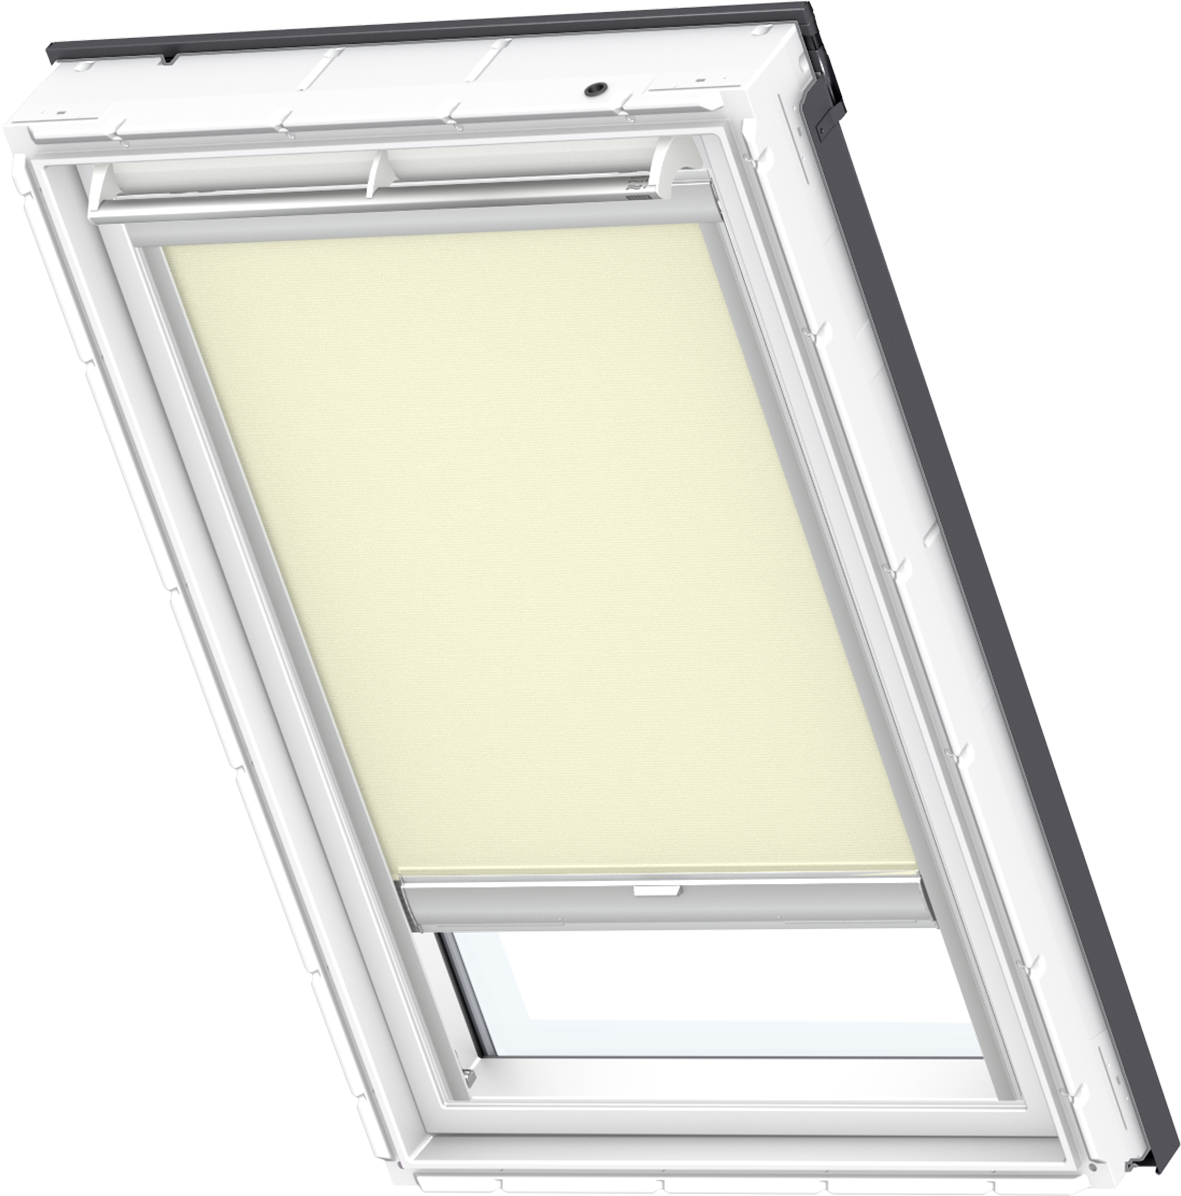 original velux solar sichtschutz rollo weiss beige blau f r ggu gpu ghu gtu gxu ebay. Black Bedroom Furniture Sets. Home Design Ideas